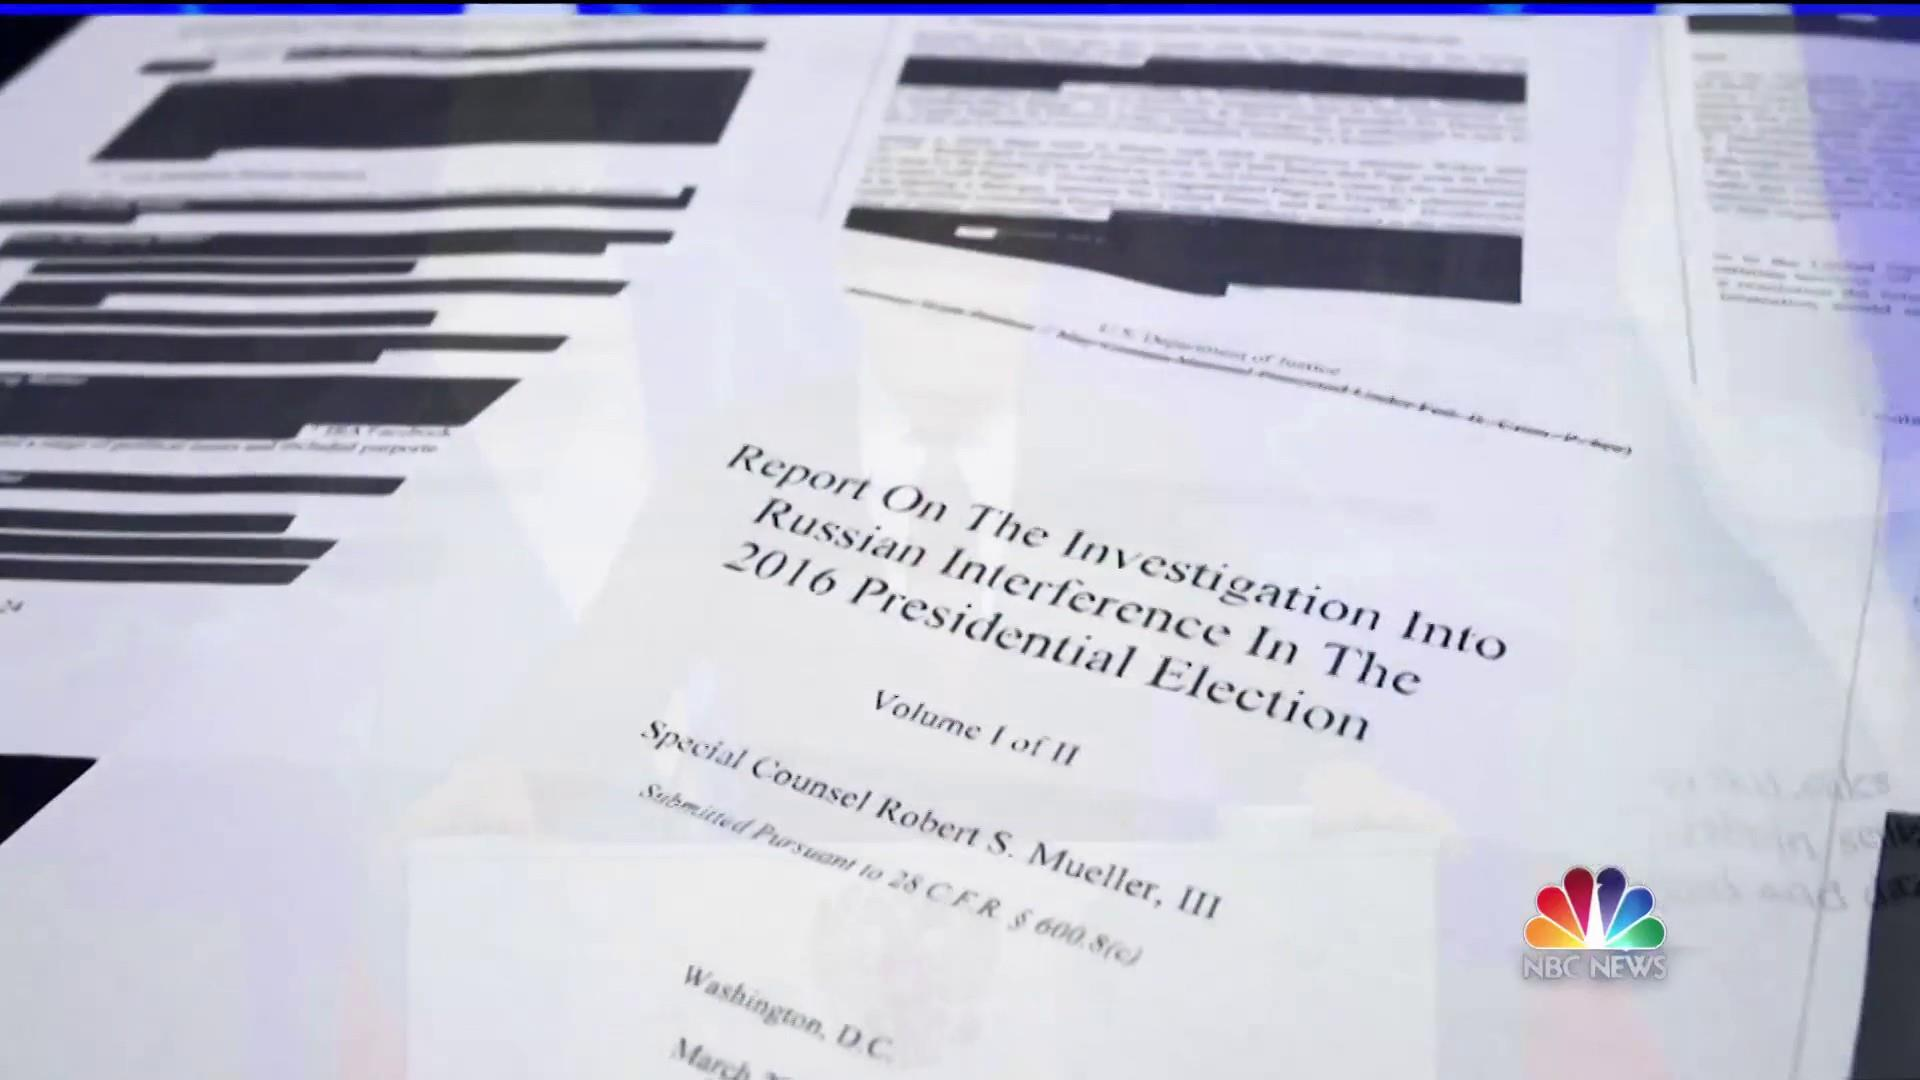 Mueller Report: 'Does not exonerate' President Trump